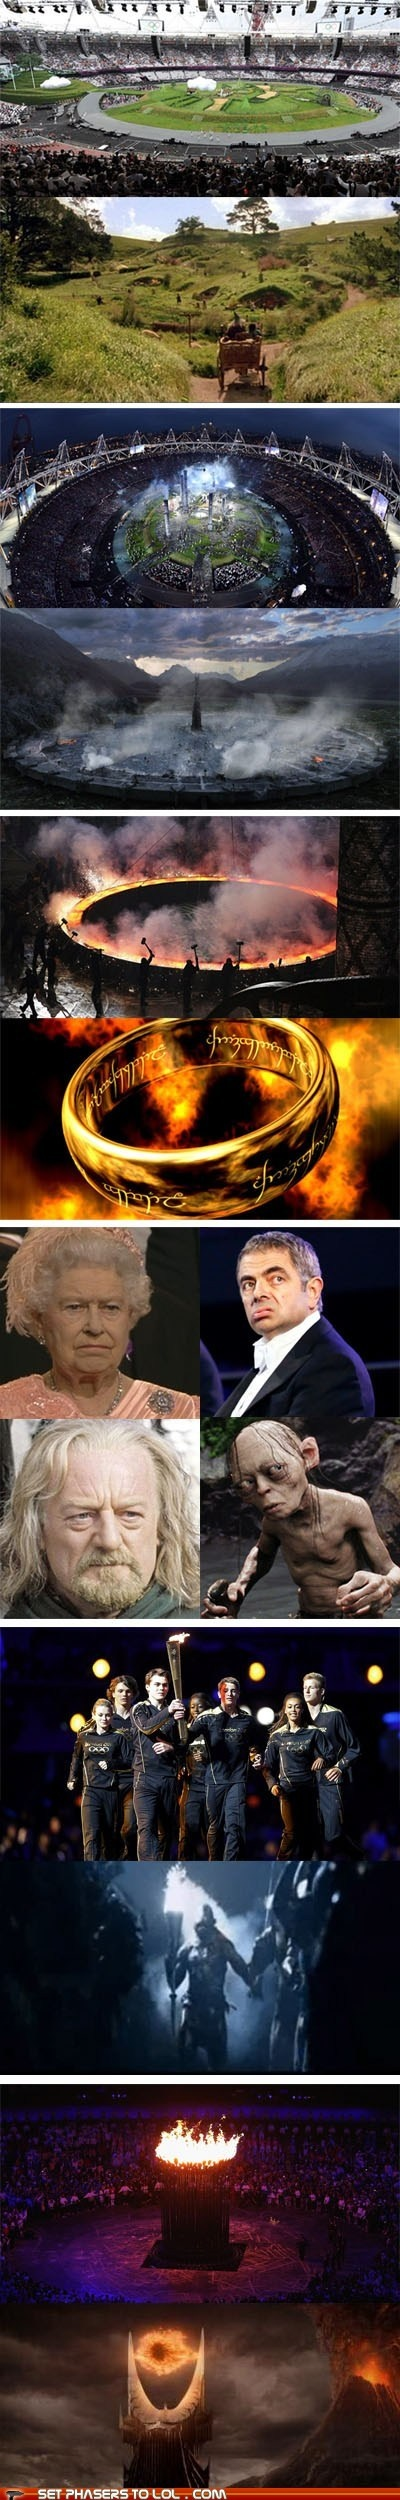 sci fi fantasy Lord of the Rings - I Knew There was Something Familiar About the Opening Ceremony